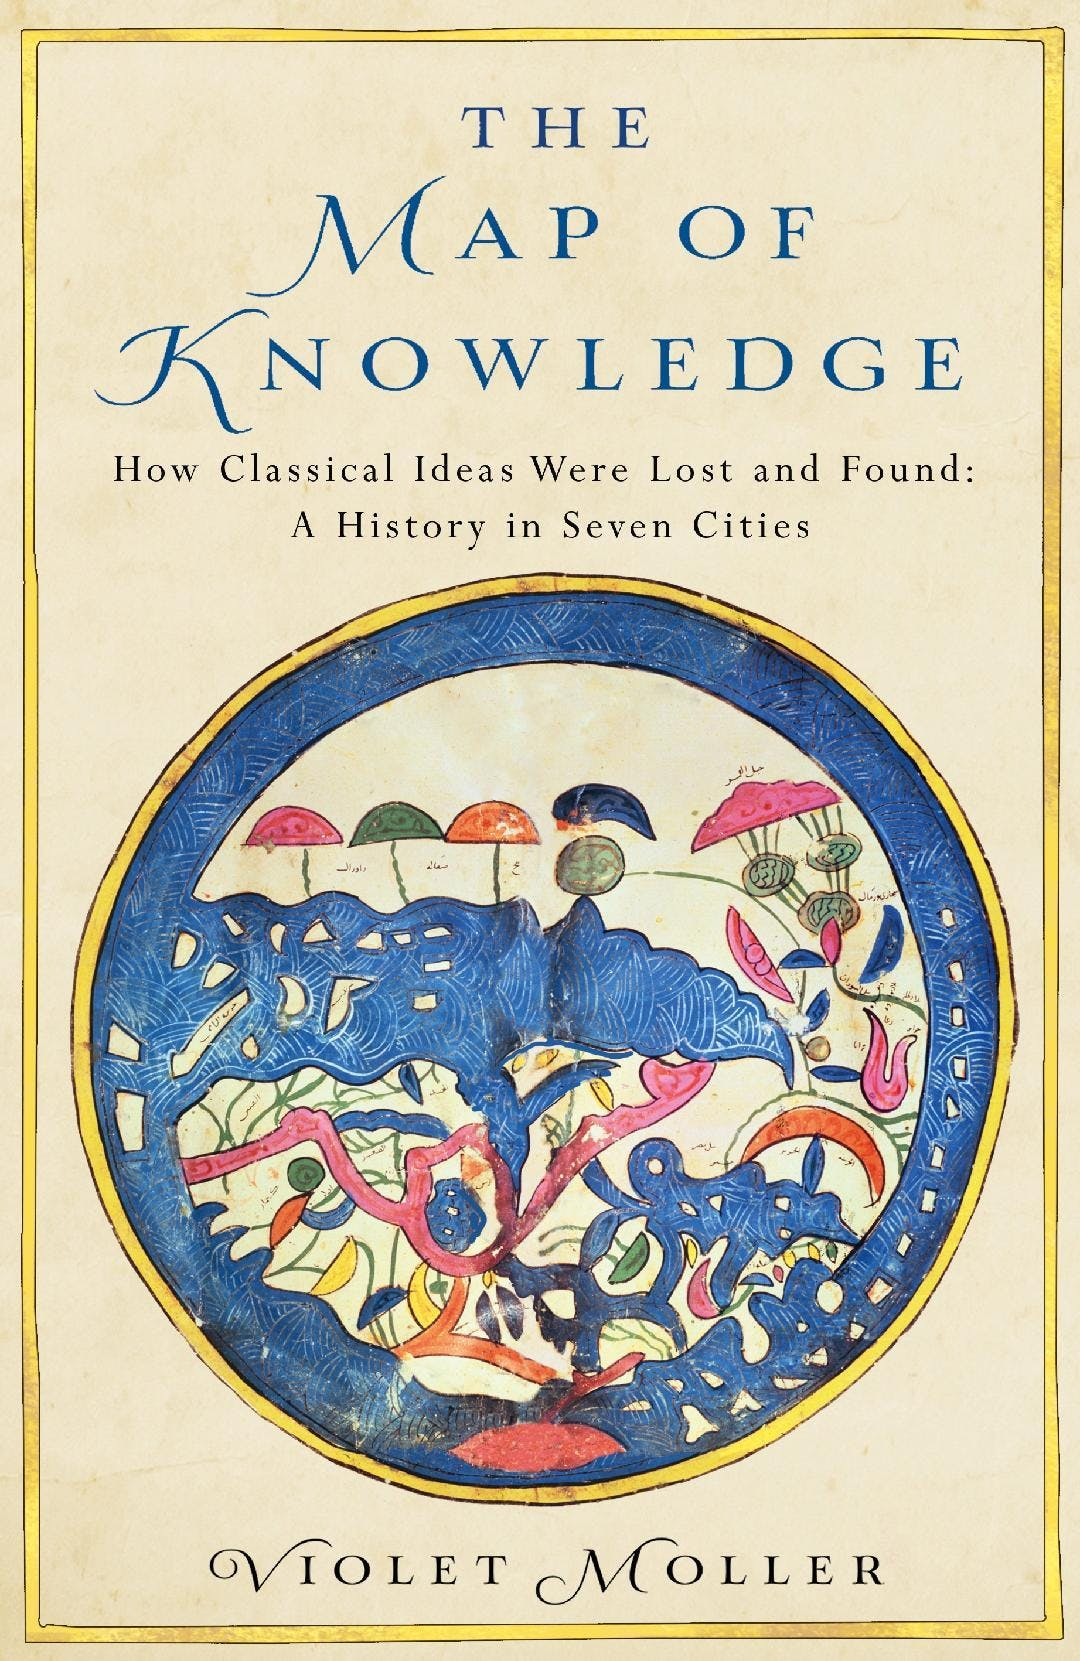 Violet Moller - The Map of Knowledge